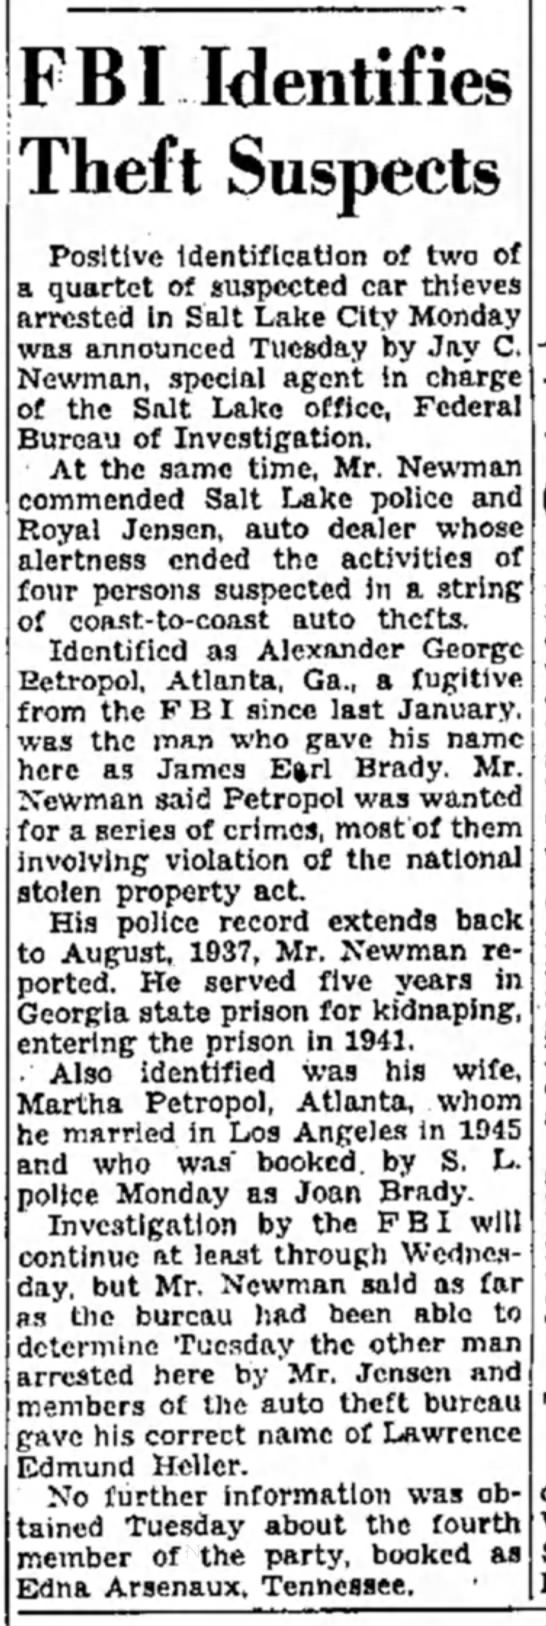 arrest for car theft 1946 -